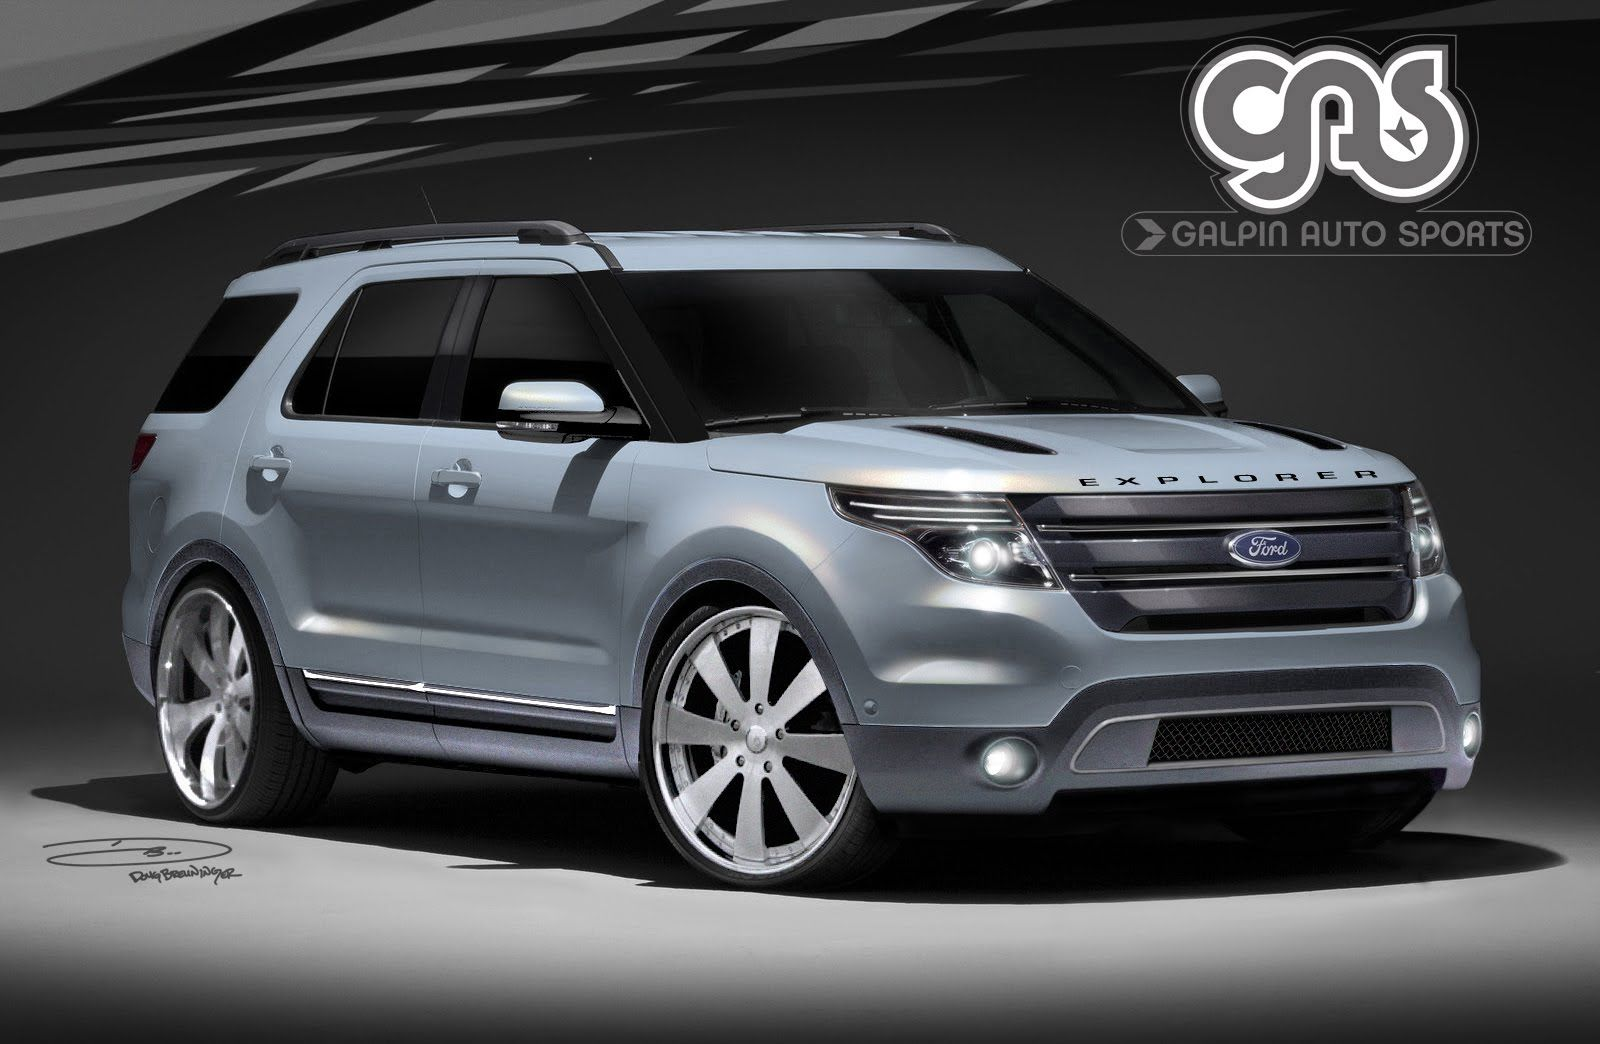 2014 Ford Explorer 24 Rims 2011 Ford Explorer By Galpin Auto